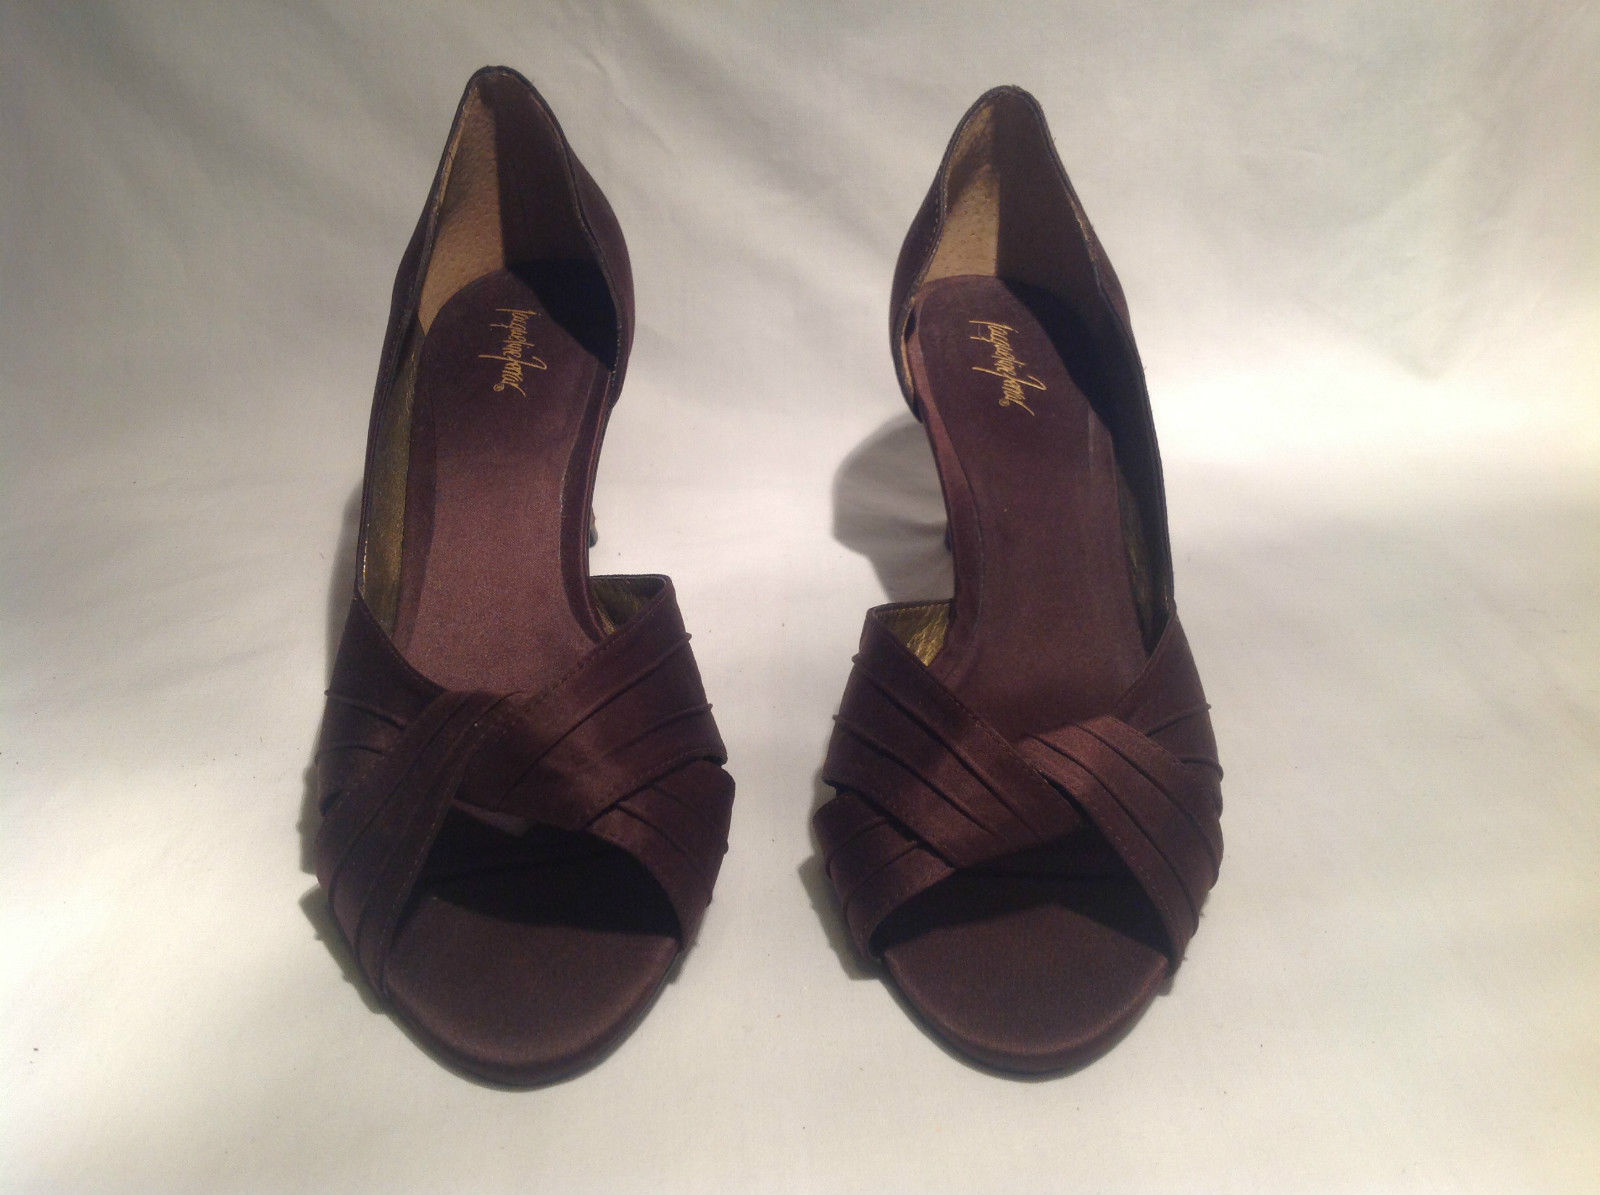 Brown Metallic Jacqueline Ferrar Heels Size 9M Closed Toe Heel Good Condition